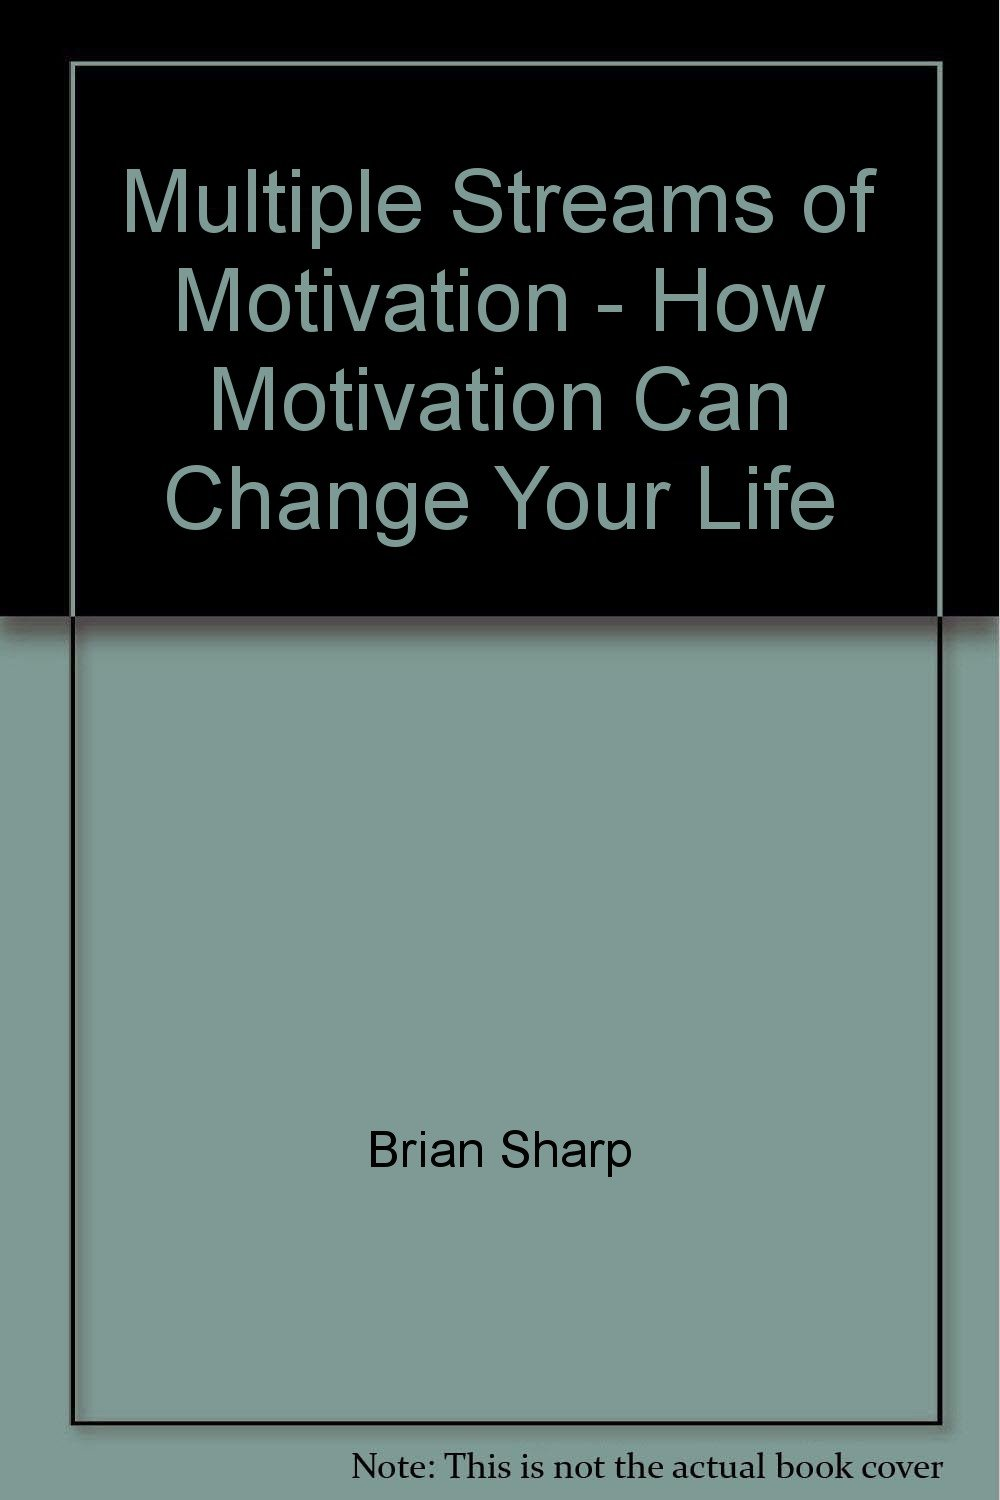 Multiple Streams of Motivation - How Motivation Can Change